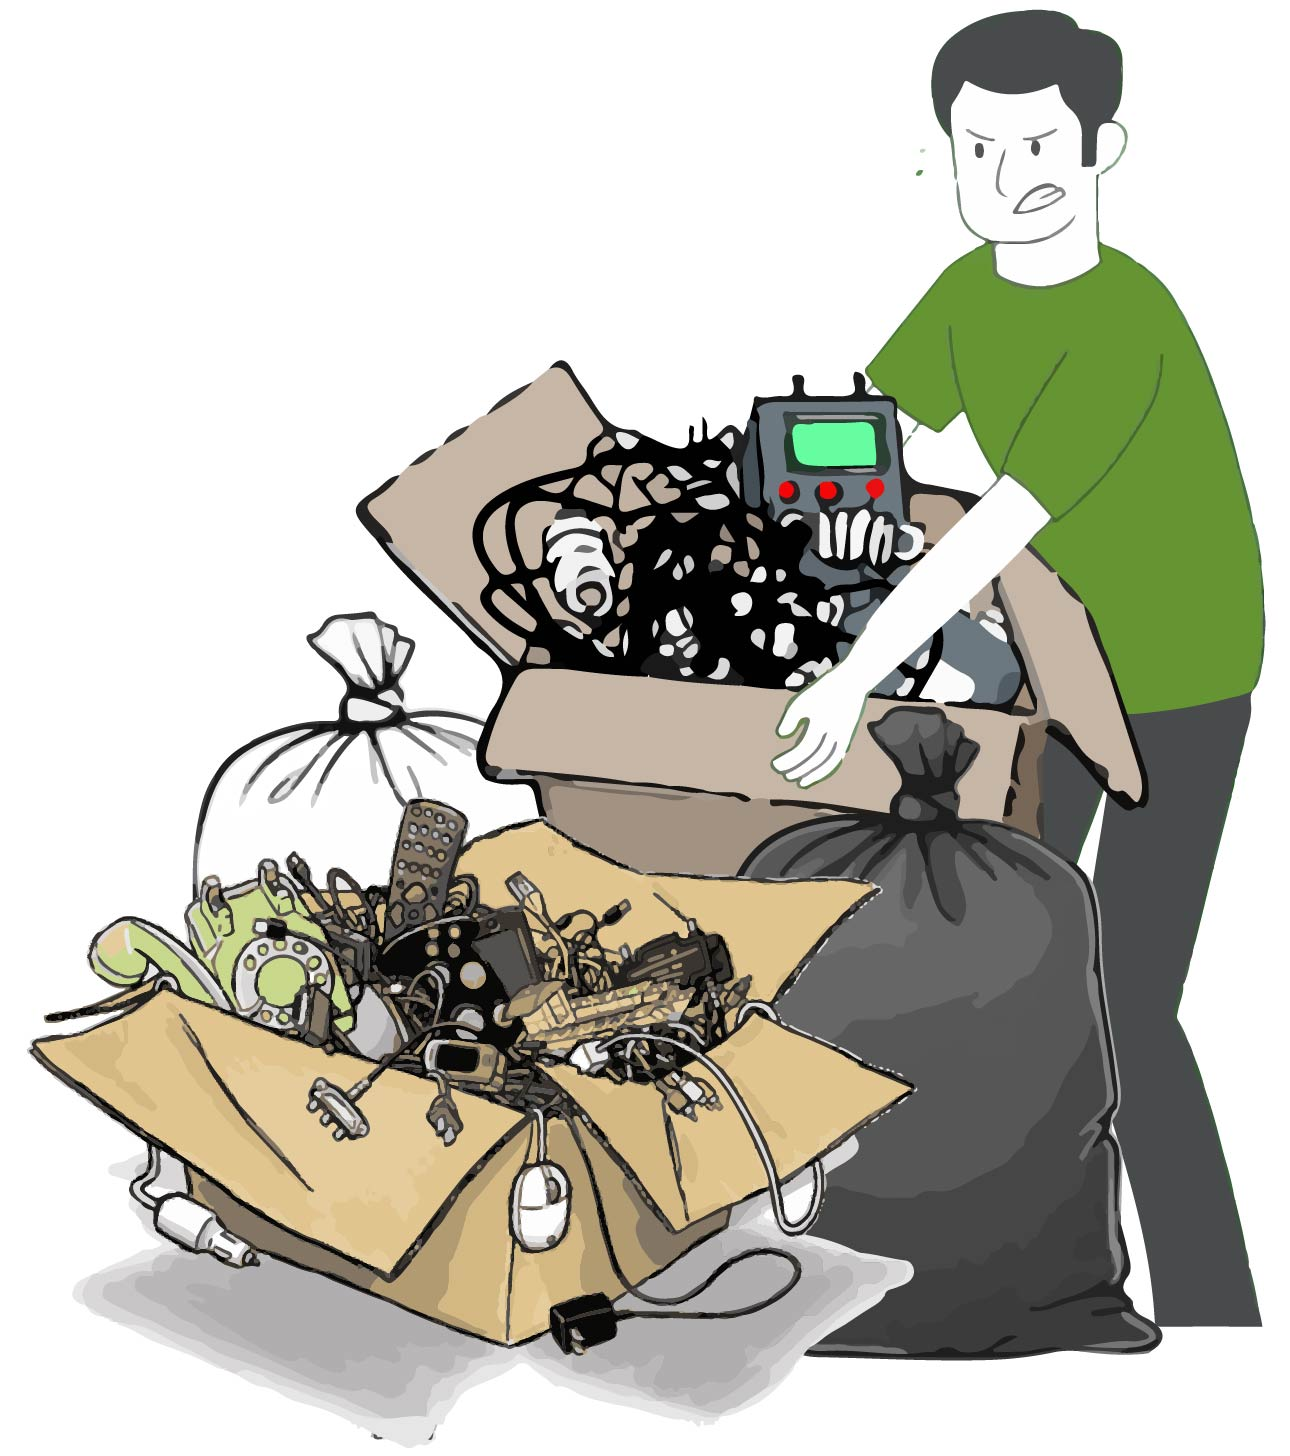 Affordable Junk Removal Services in Aspen, CO